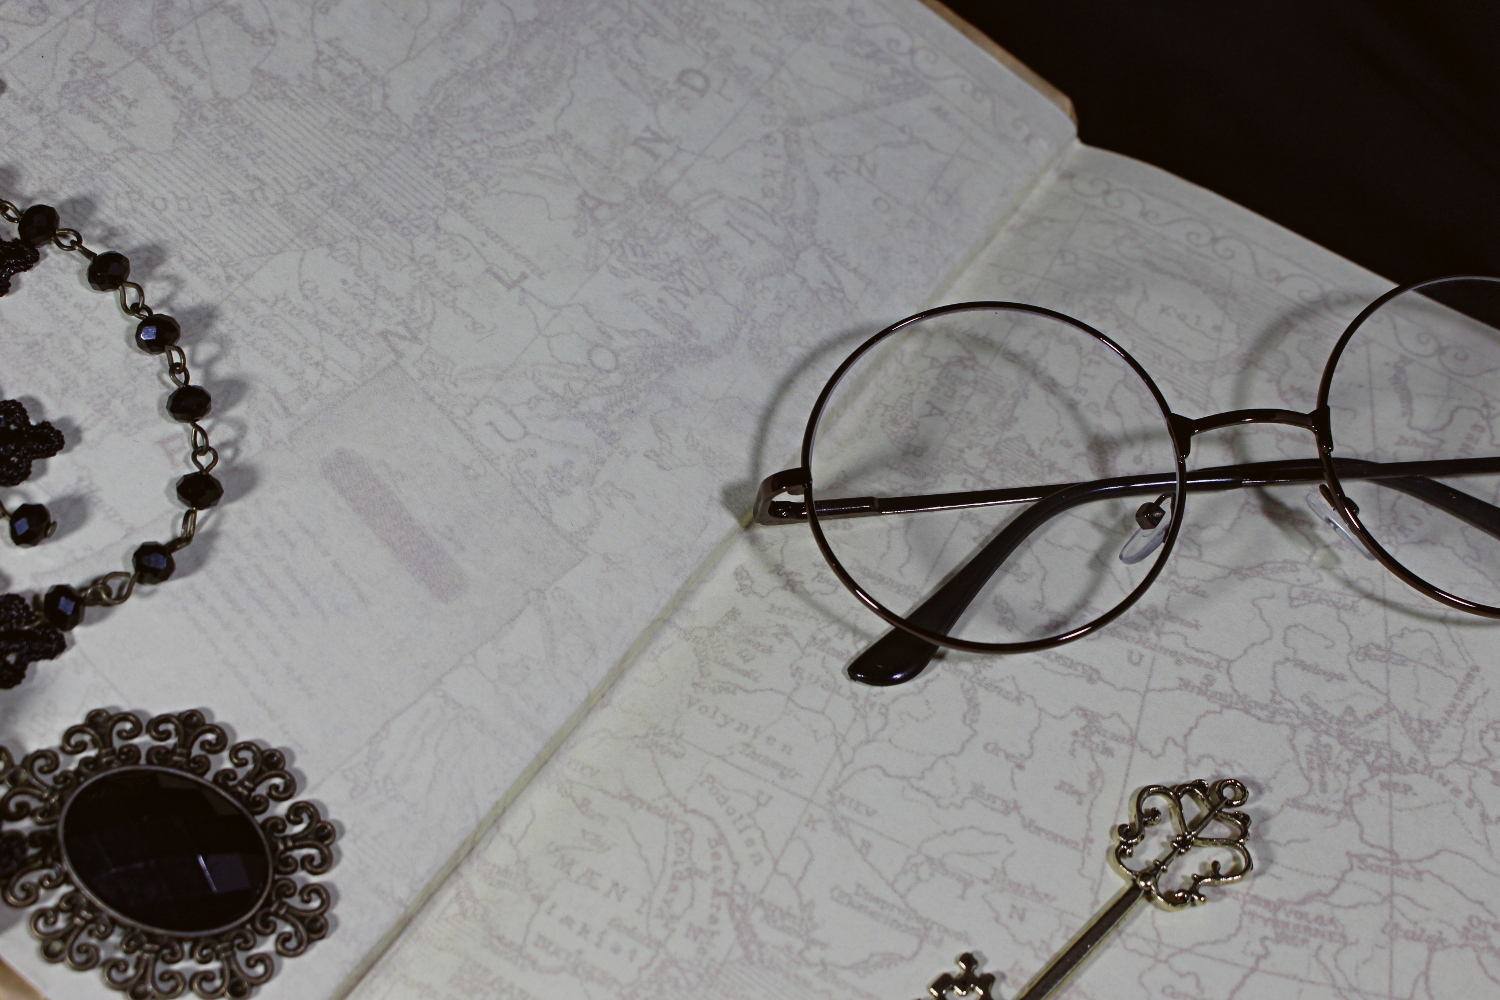 a close up image of round glasses laying on an opened book